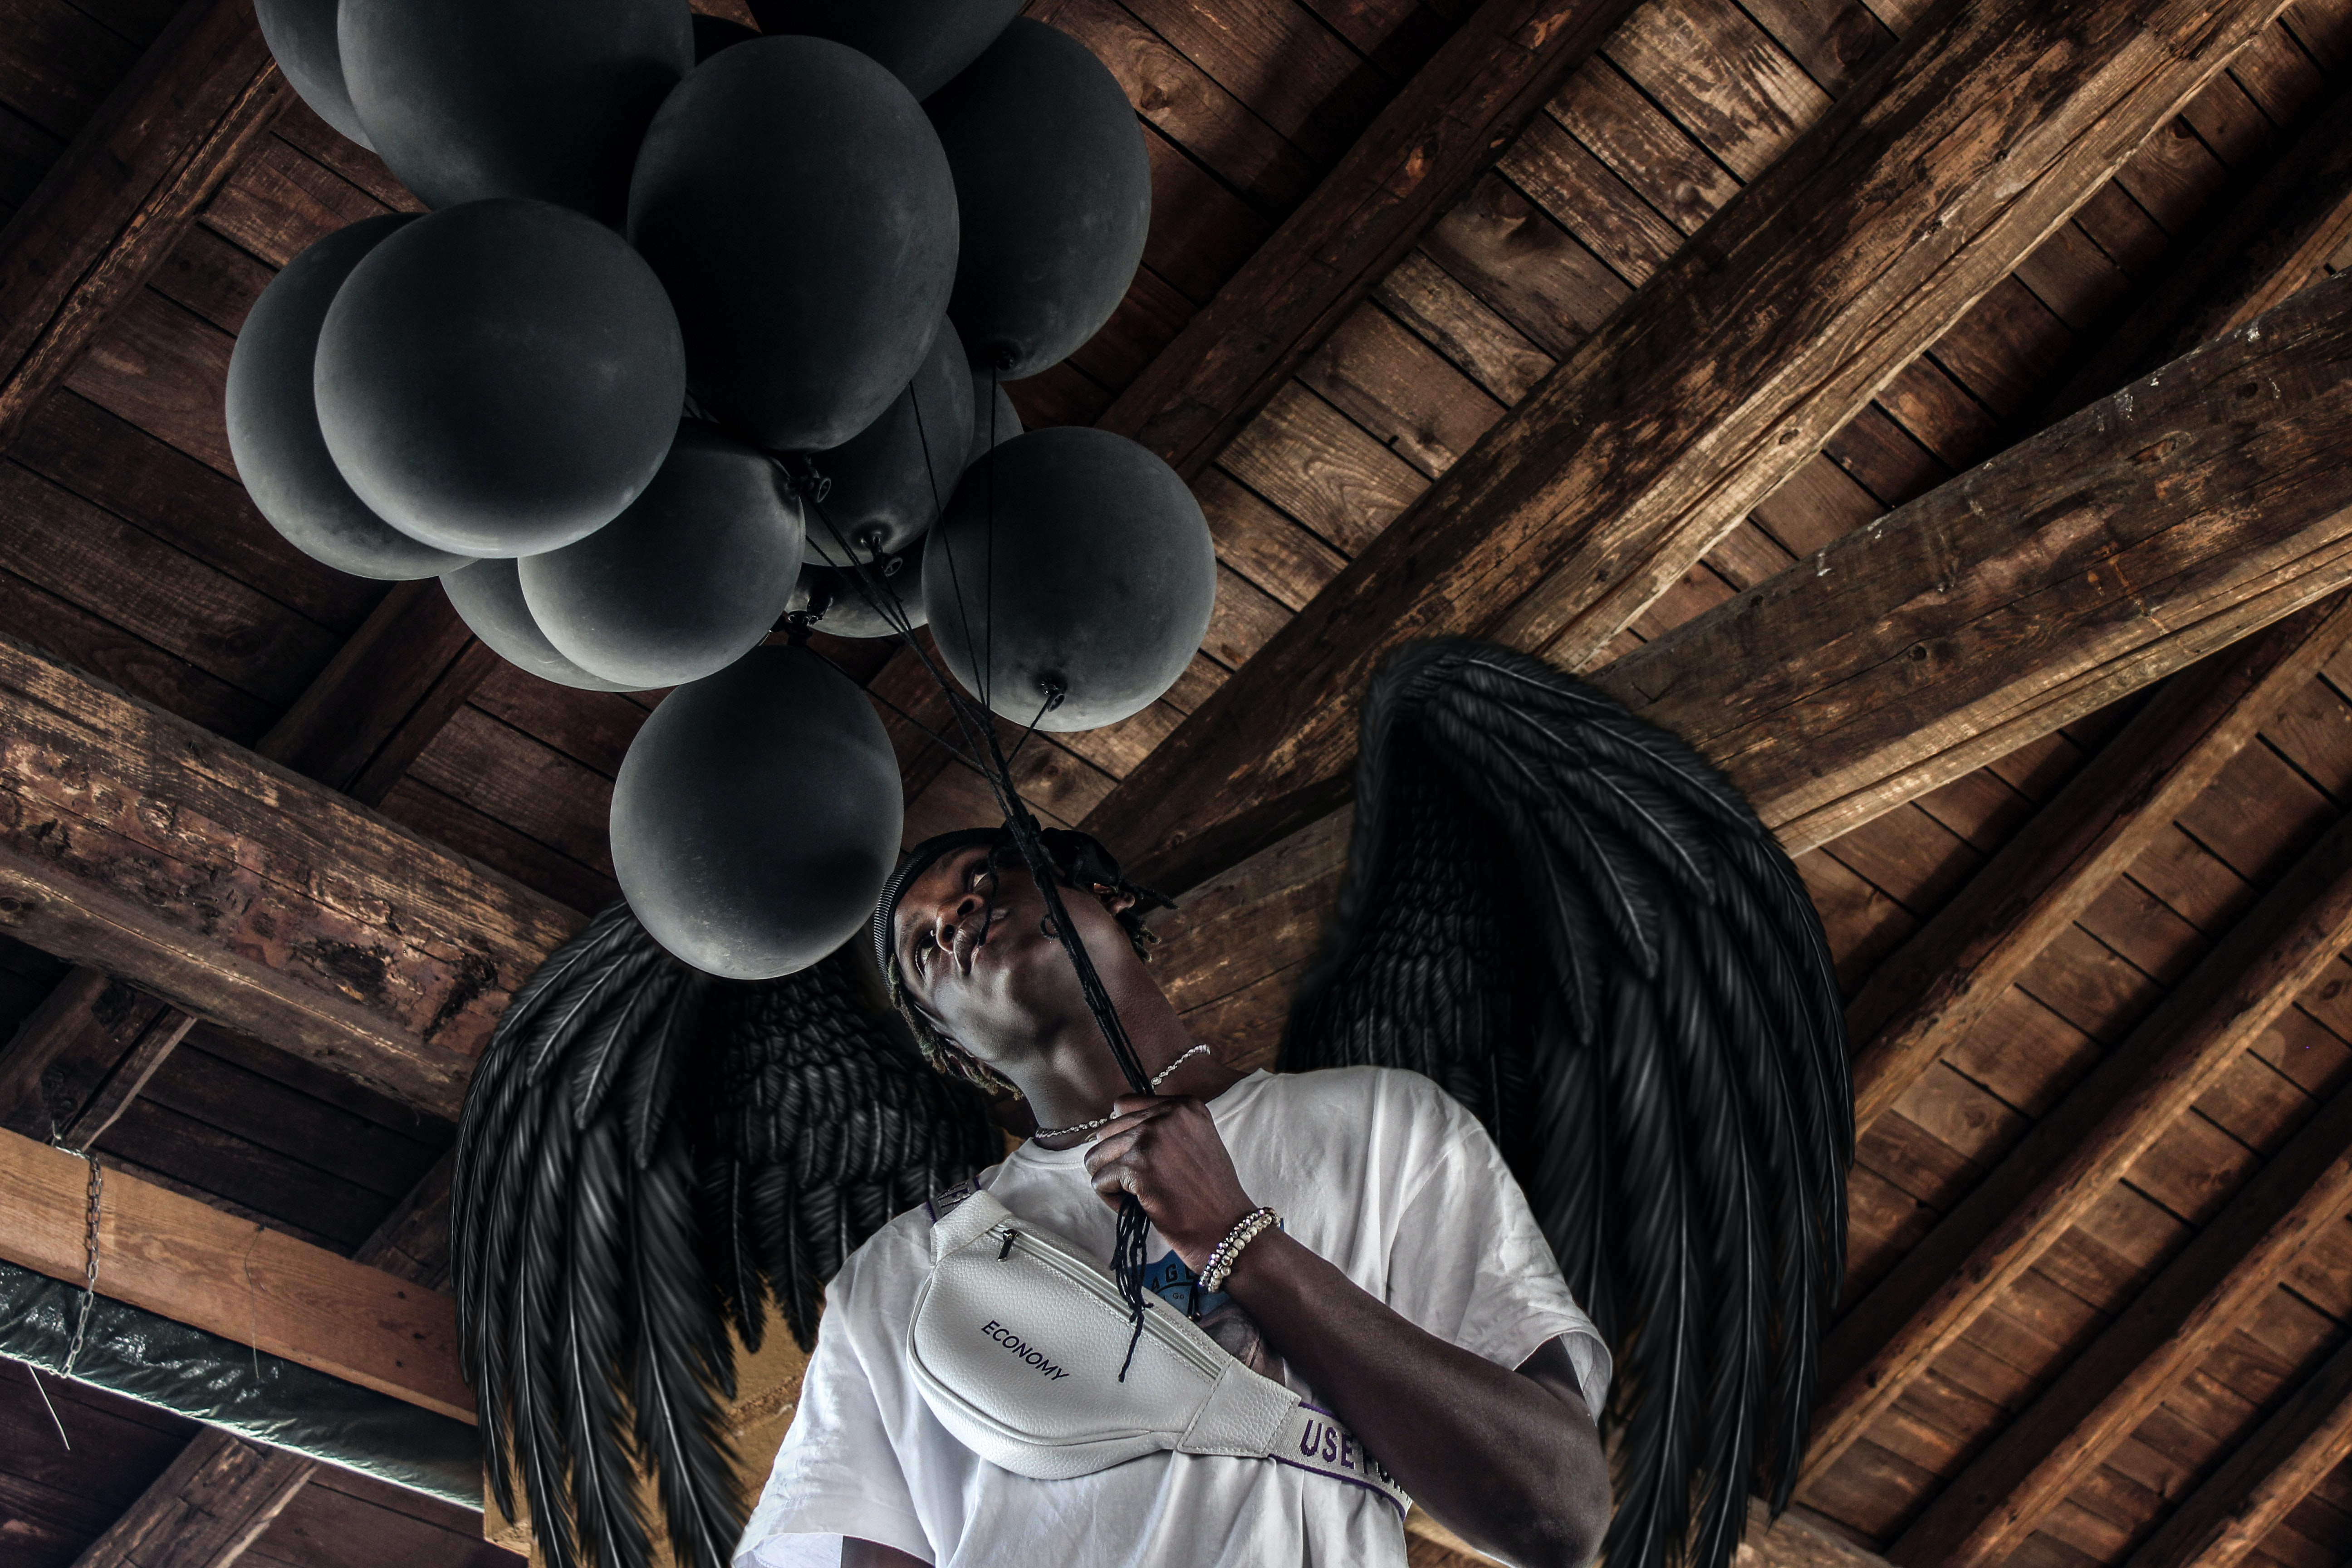 man wearing white shirt holding balloons with wings